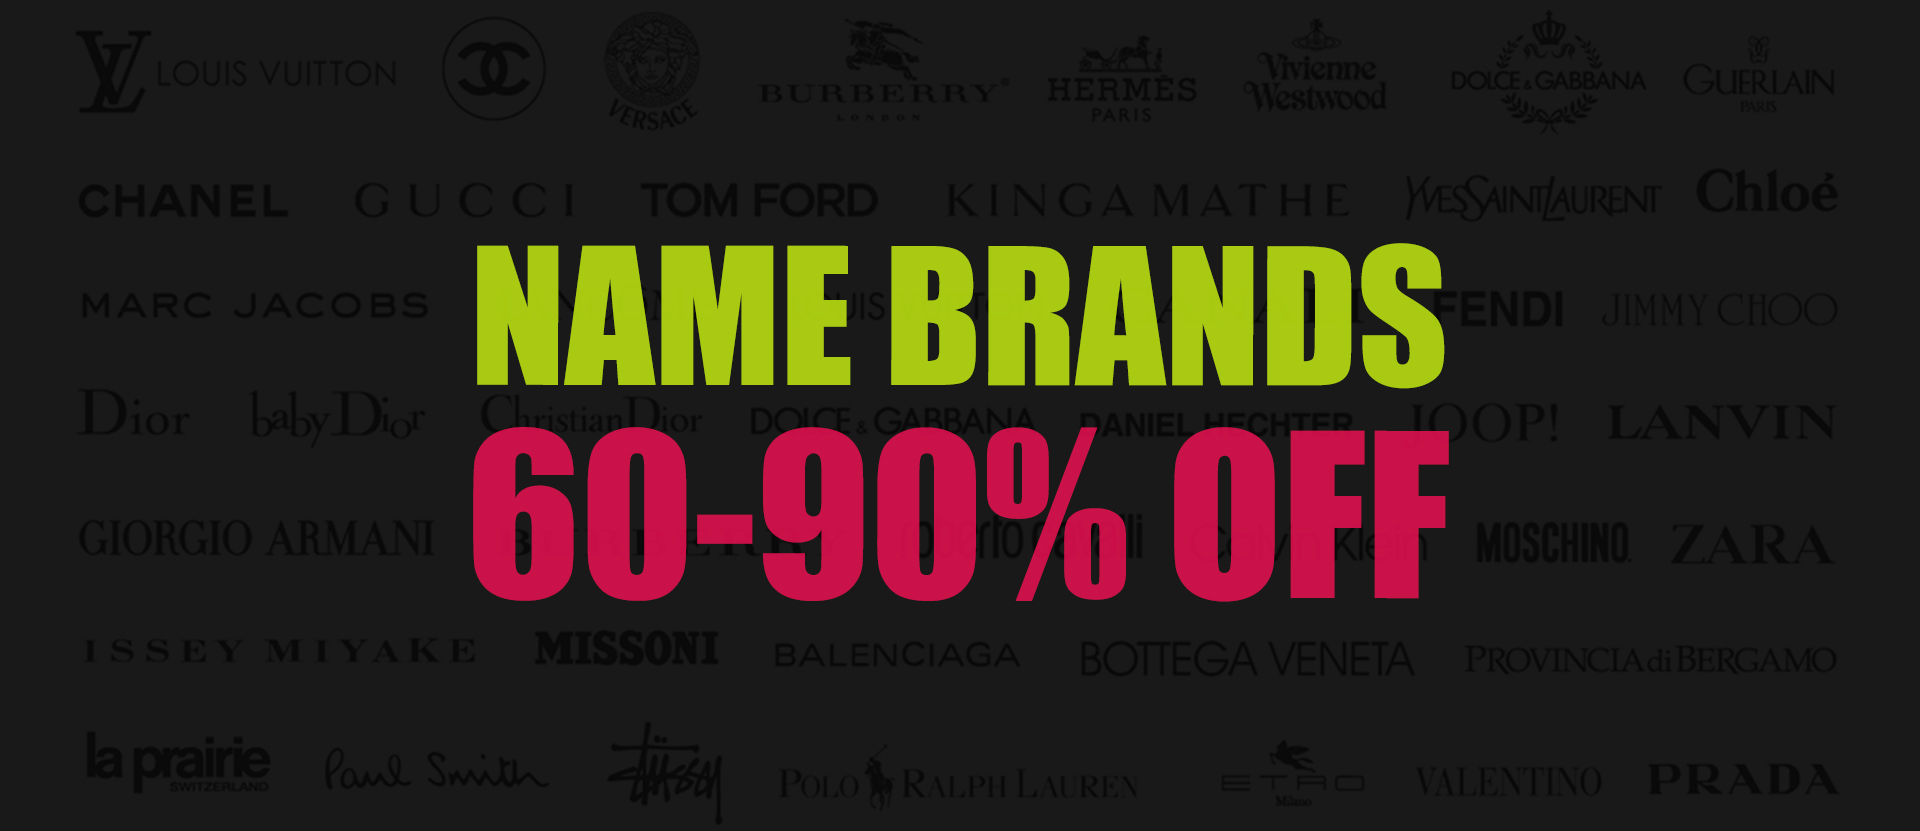 Name-Brands 60-90% off